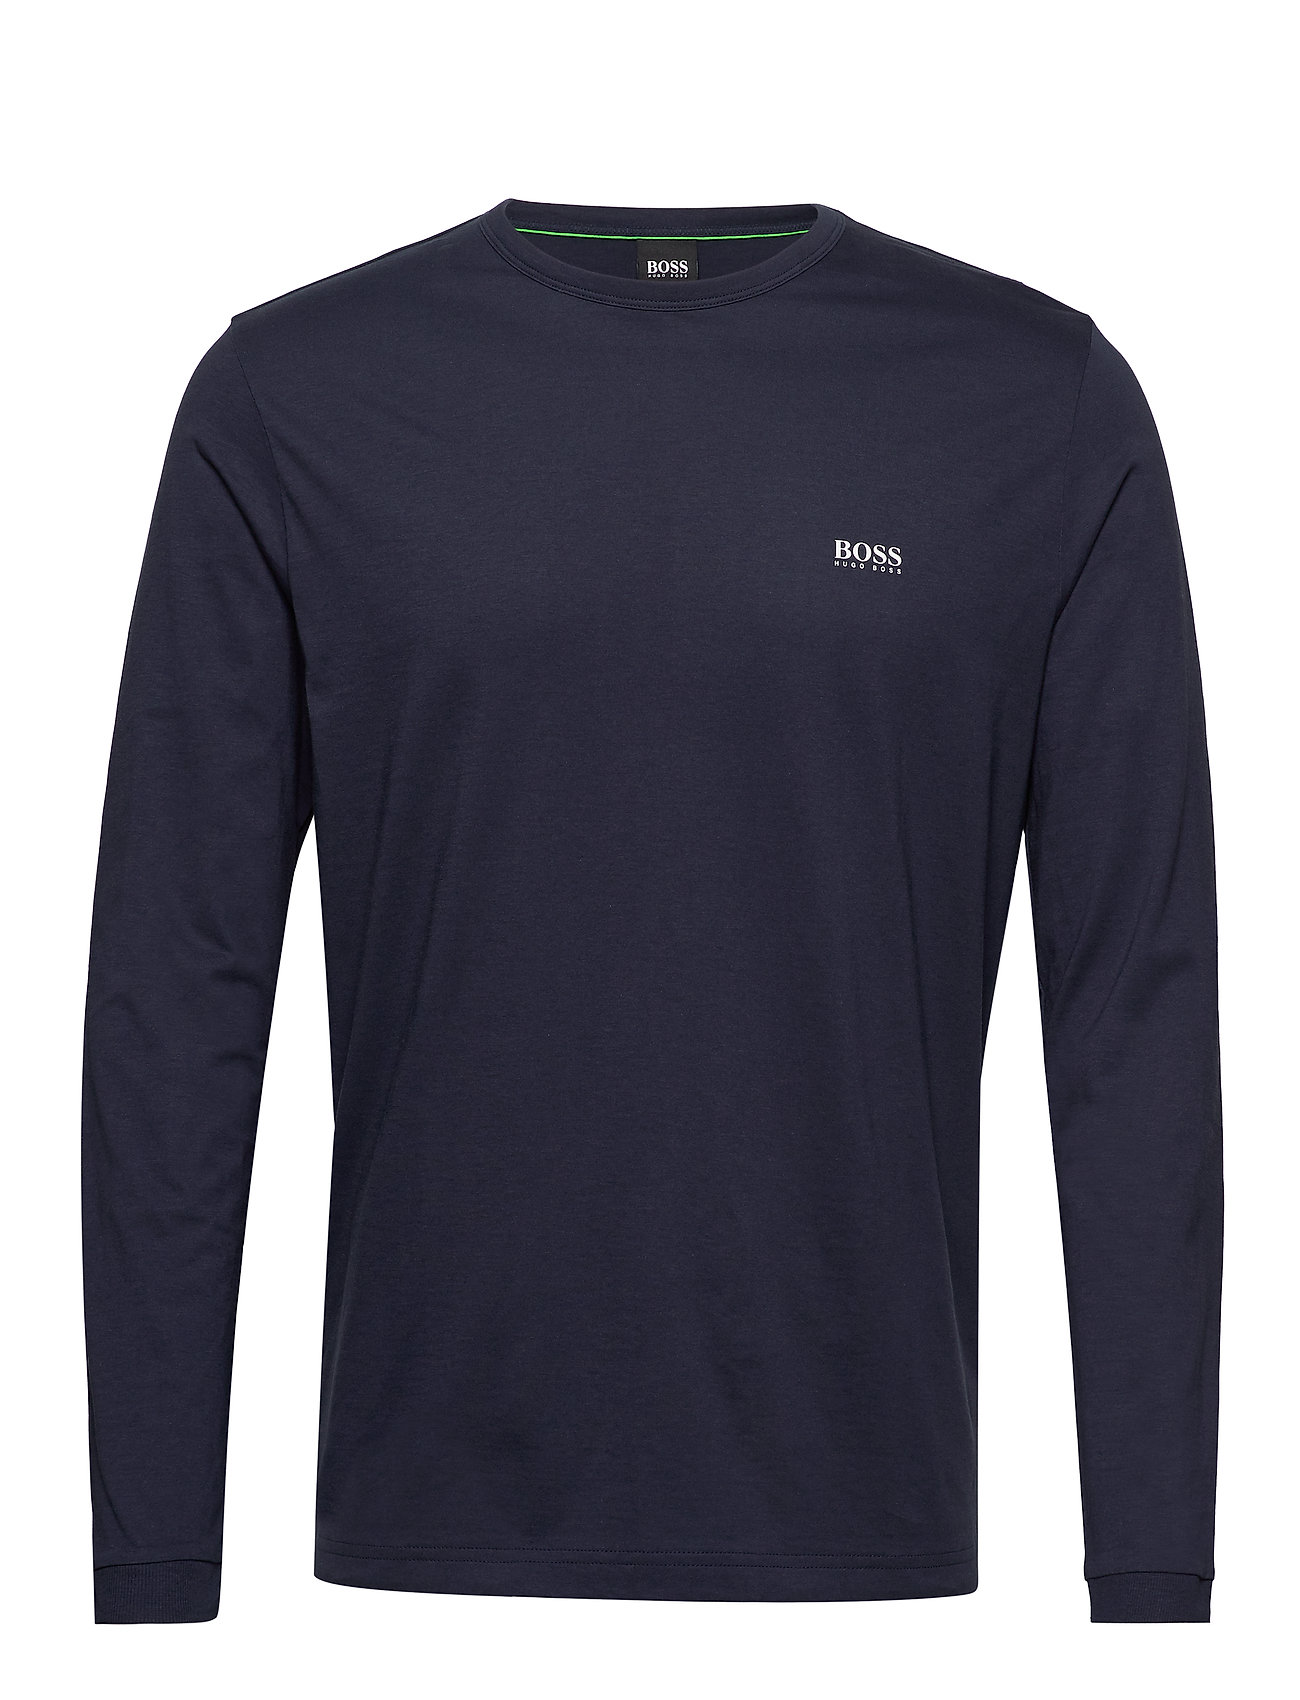 BOSS Athleisure Togn - NAVY